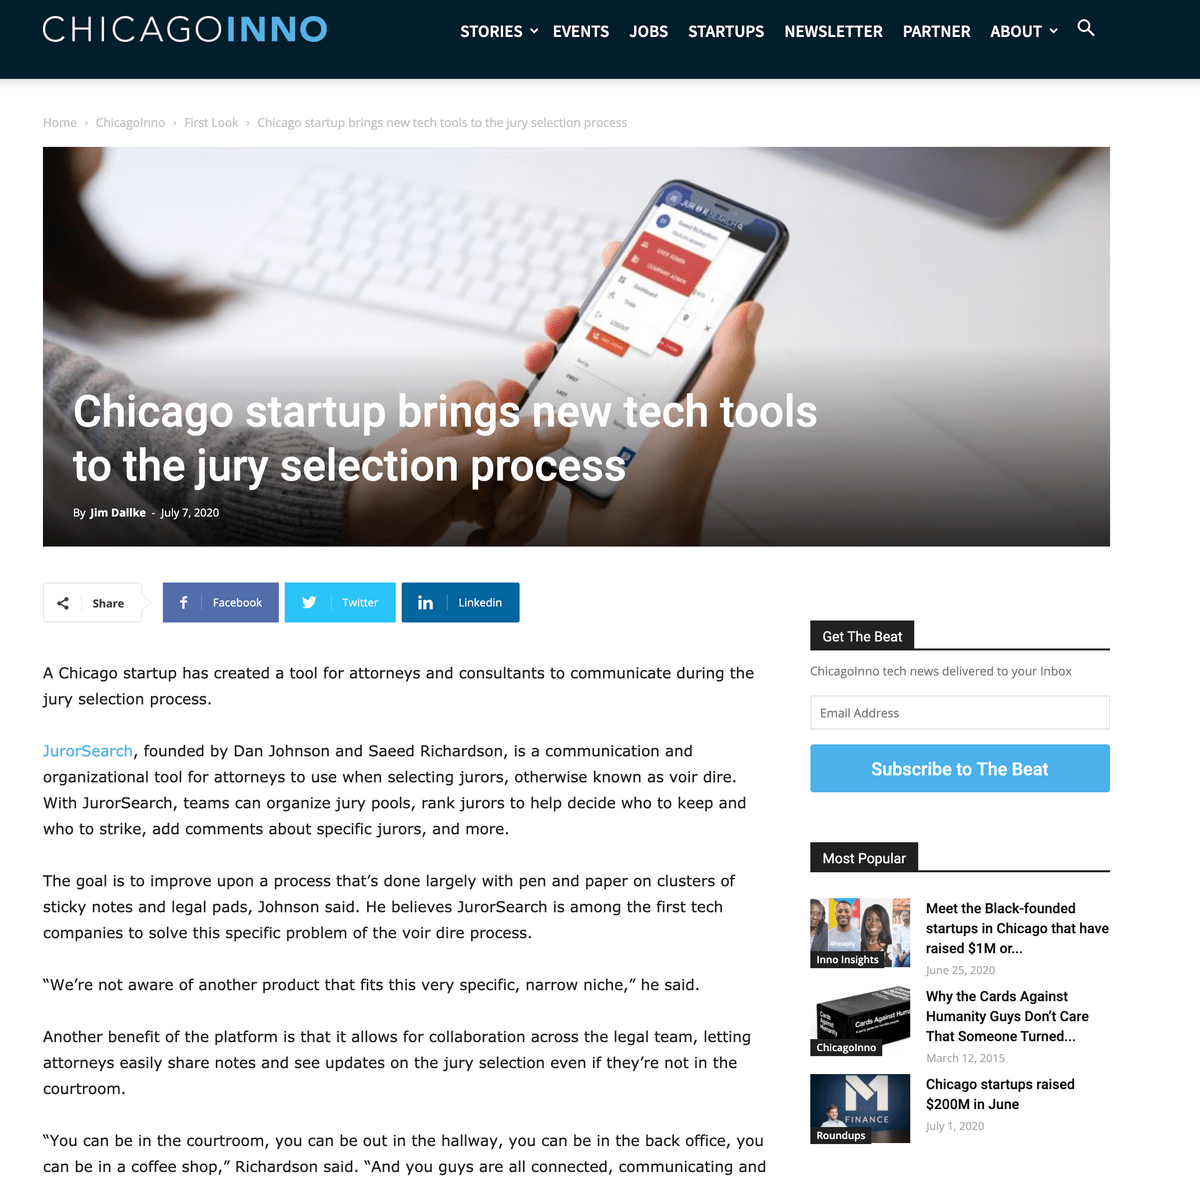 Visit the Chicago INNO website